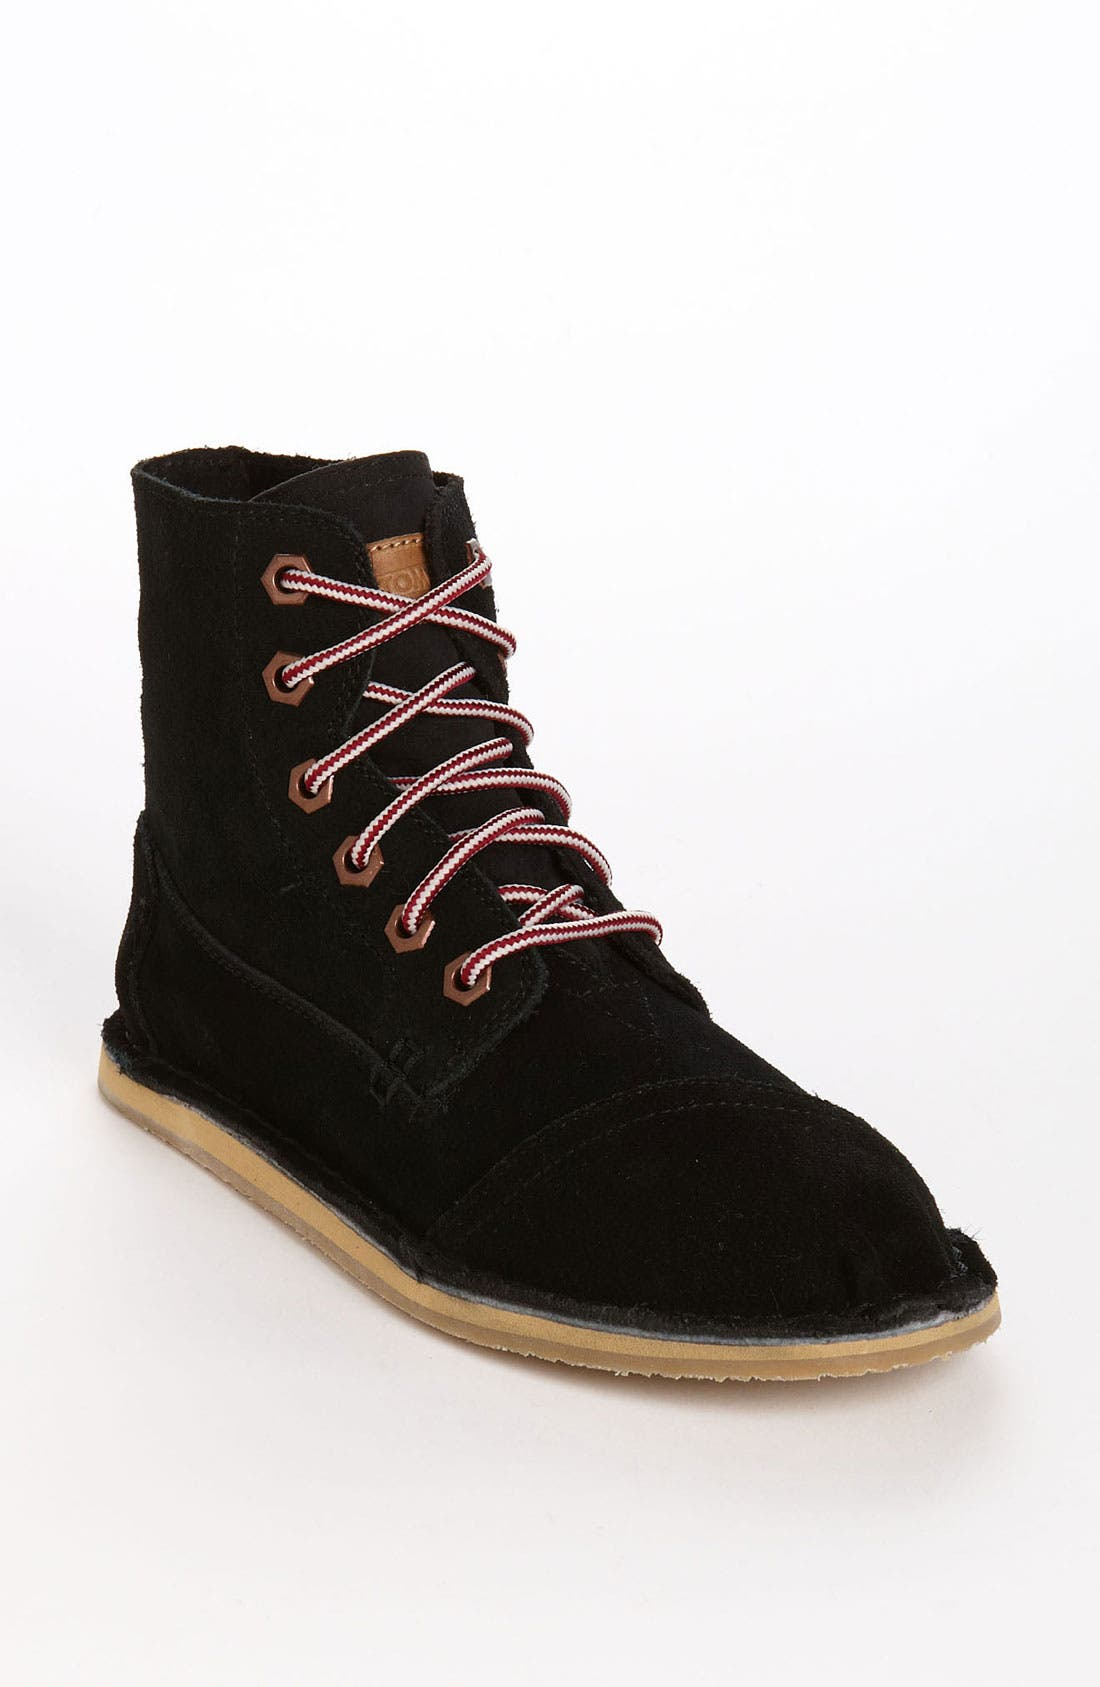 Main Image - TOMS 'Tomboy' Boot (Women)